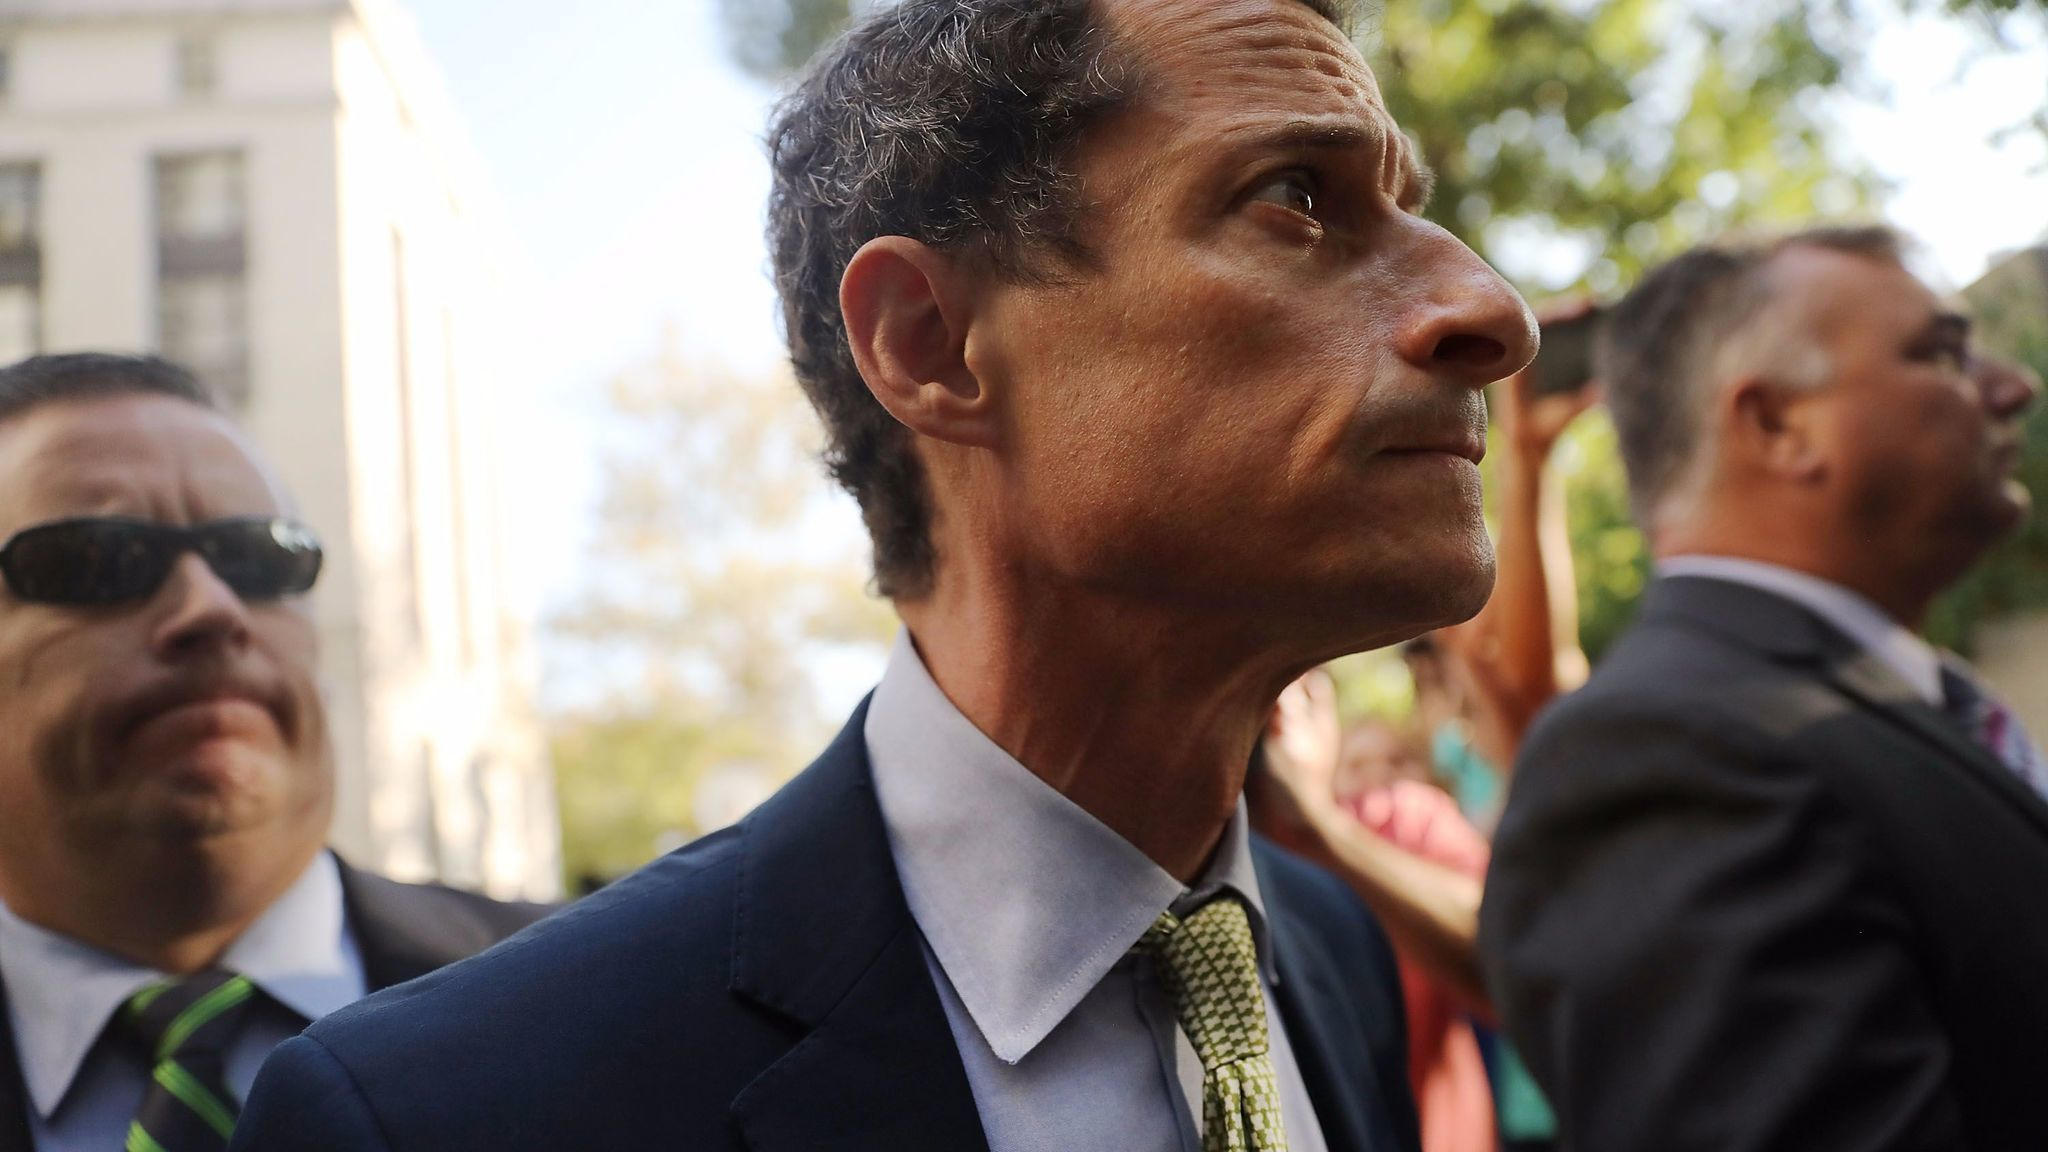 Weiner Tells New York Judge, 'I Have No Excuses,' Sentenced To 21 Months In Prison In Sexting Case